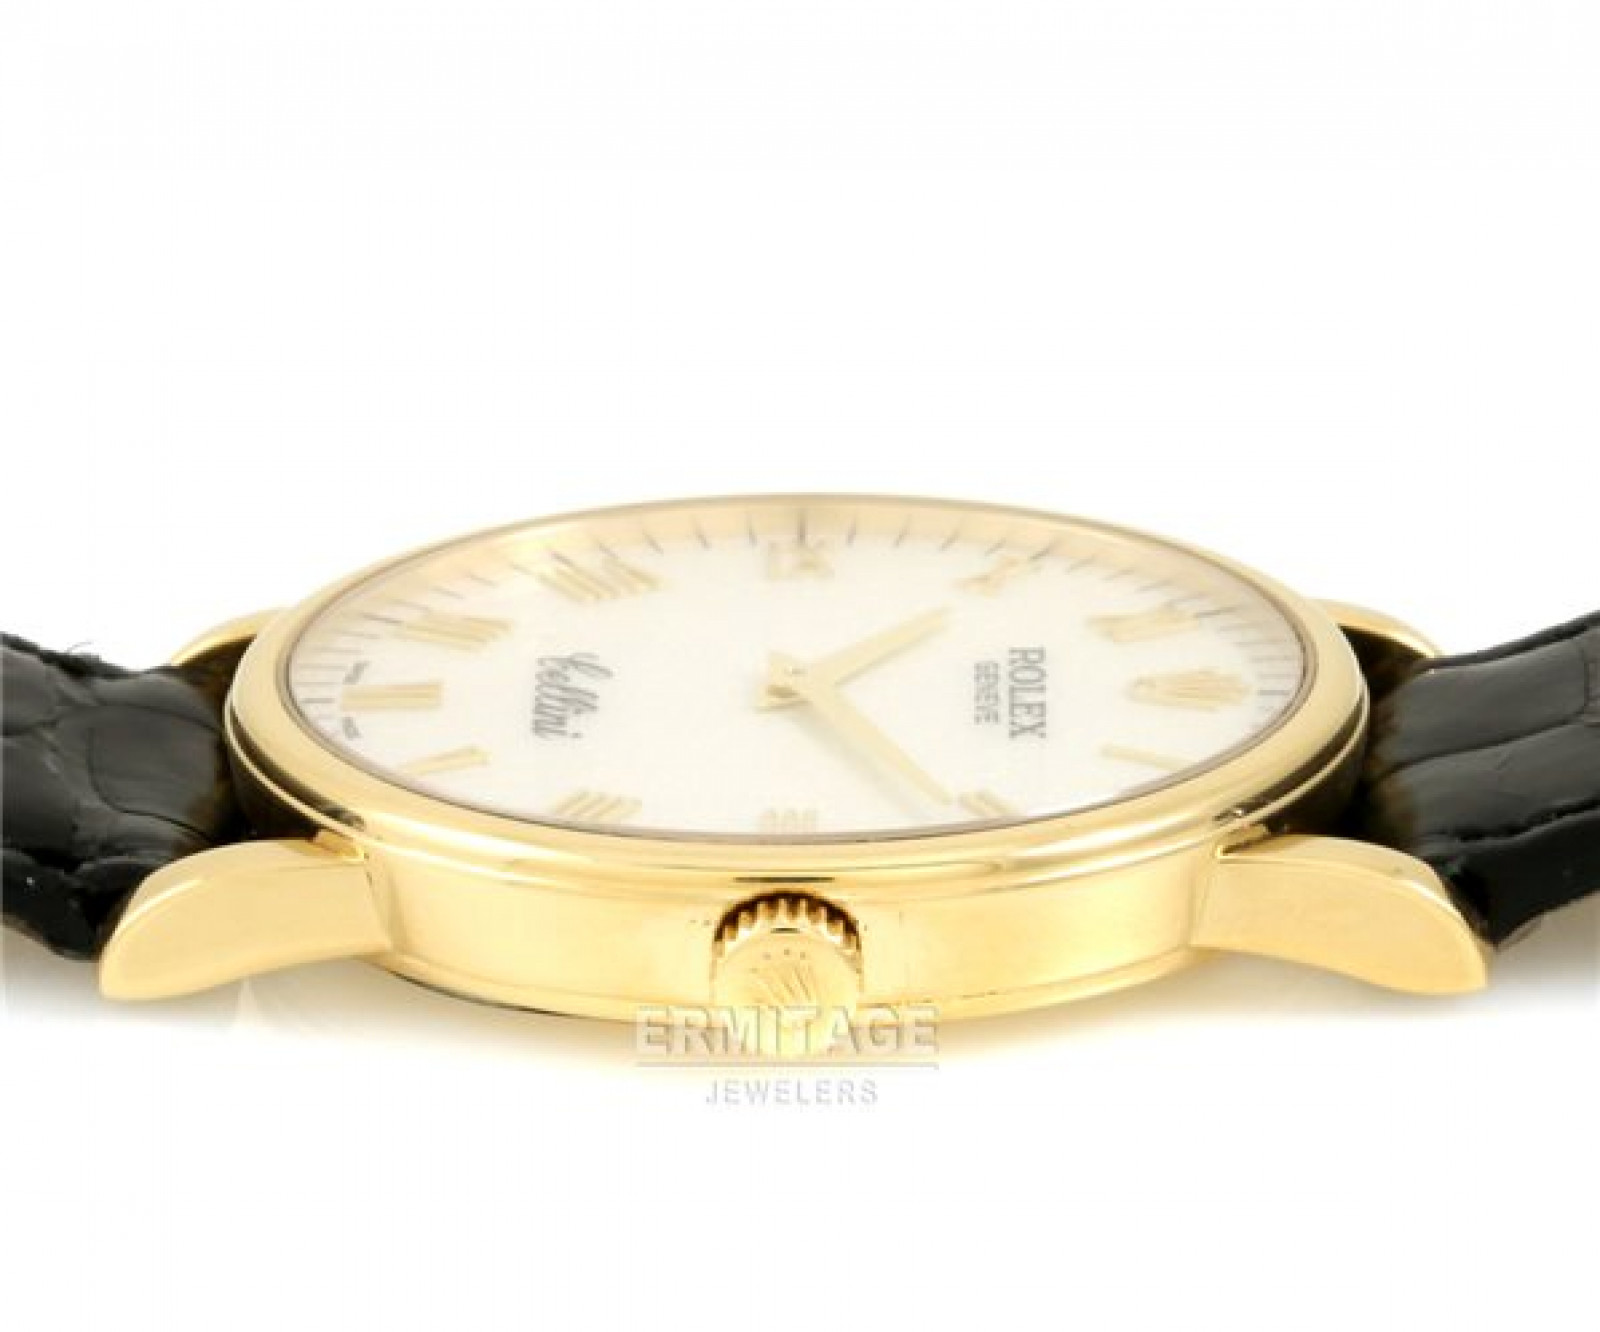 Sell Rolex Cellini 5115 Gold